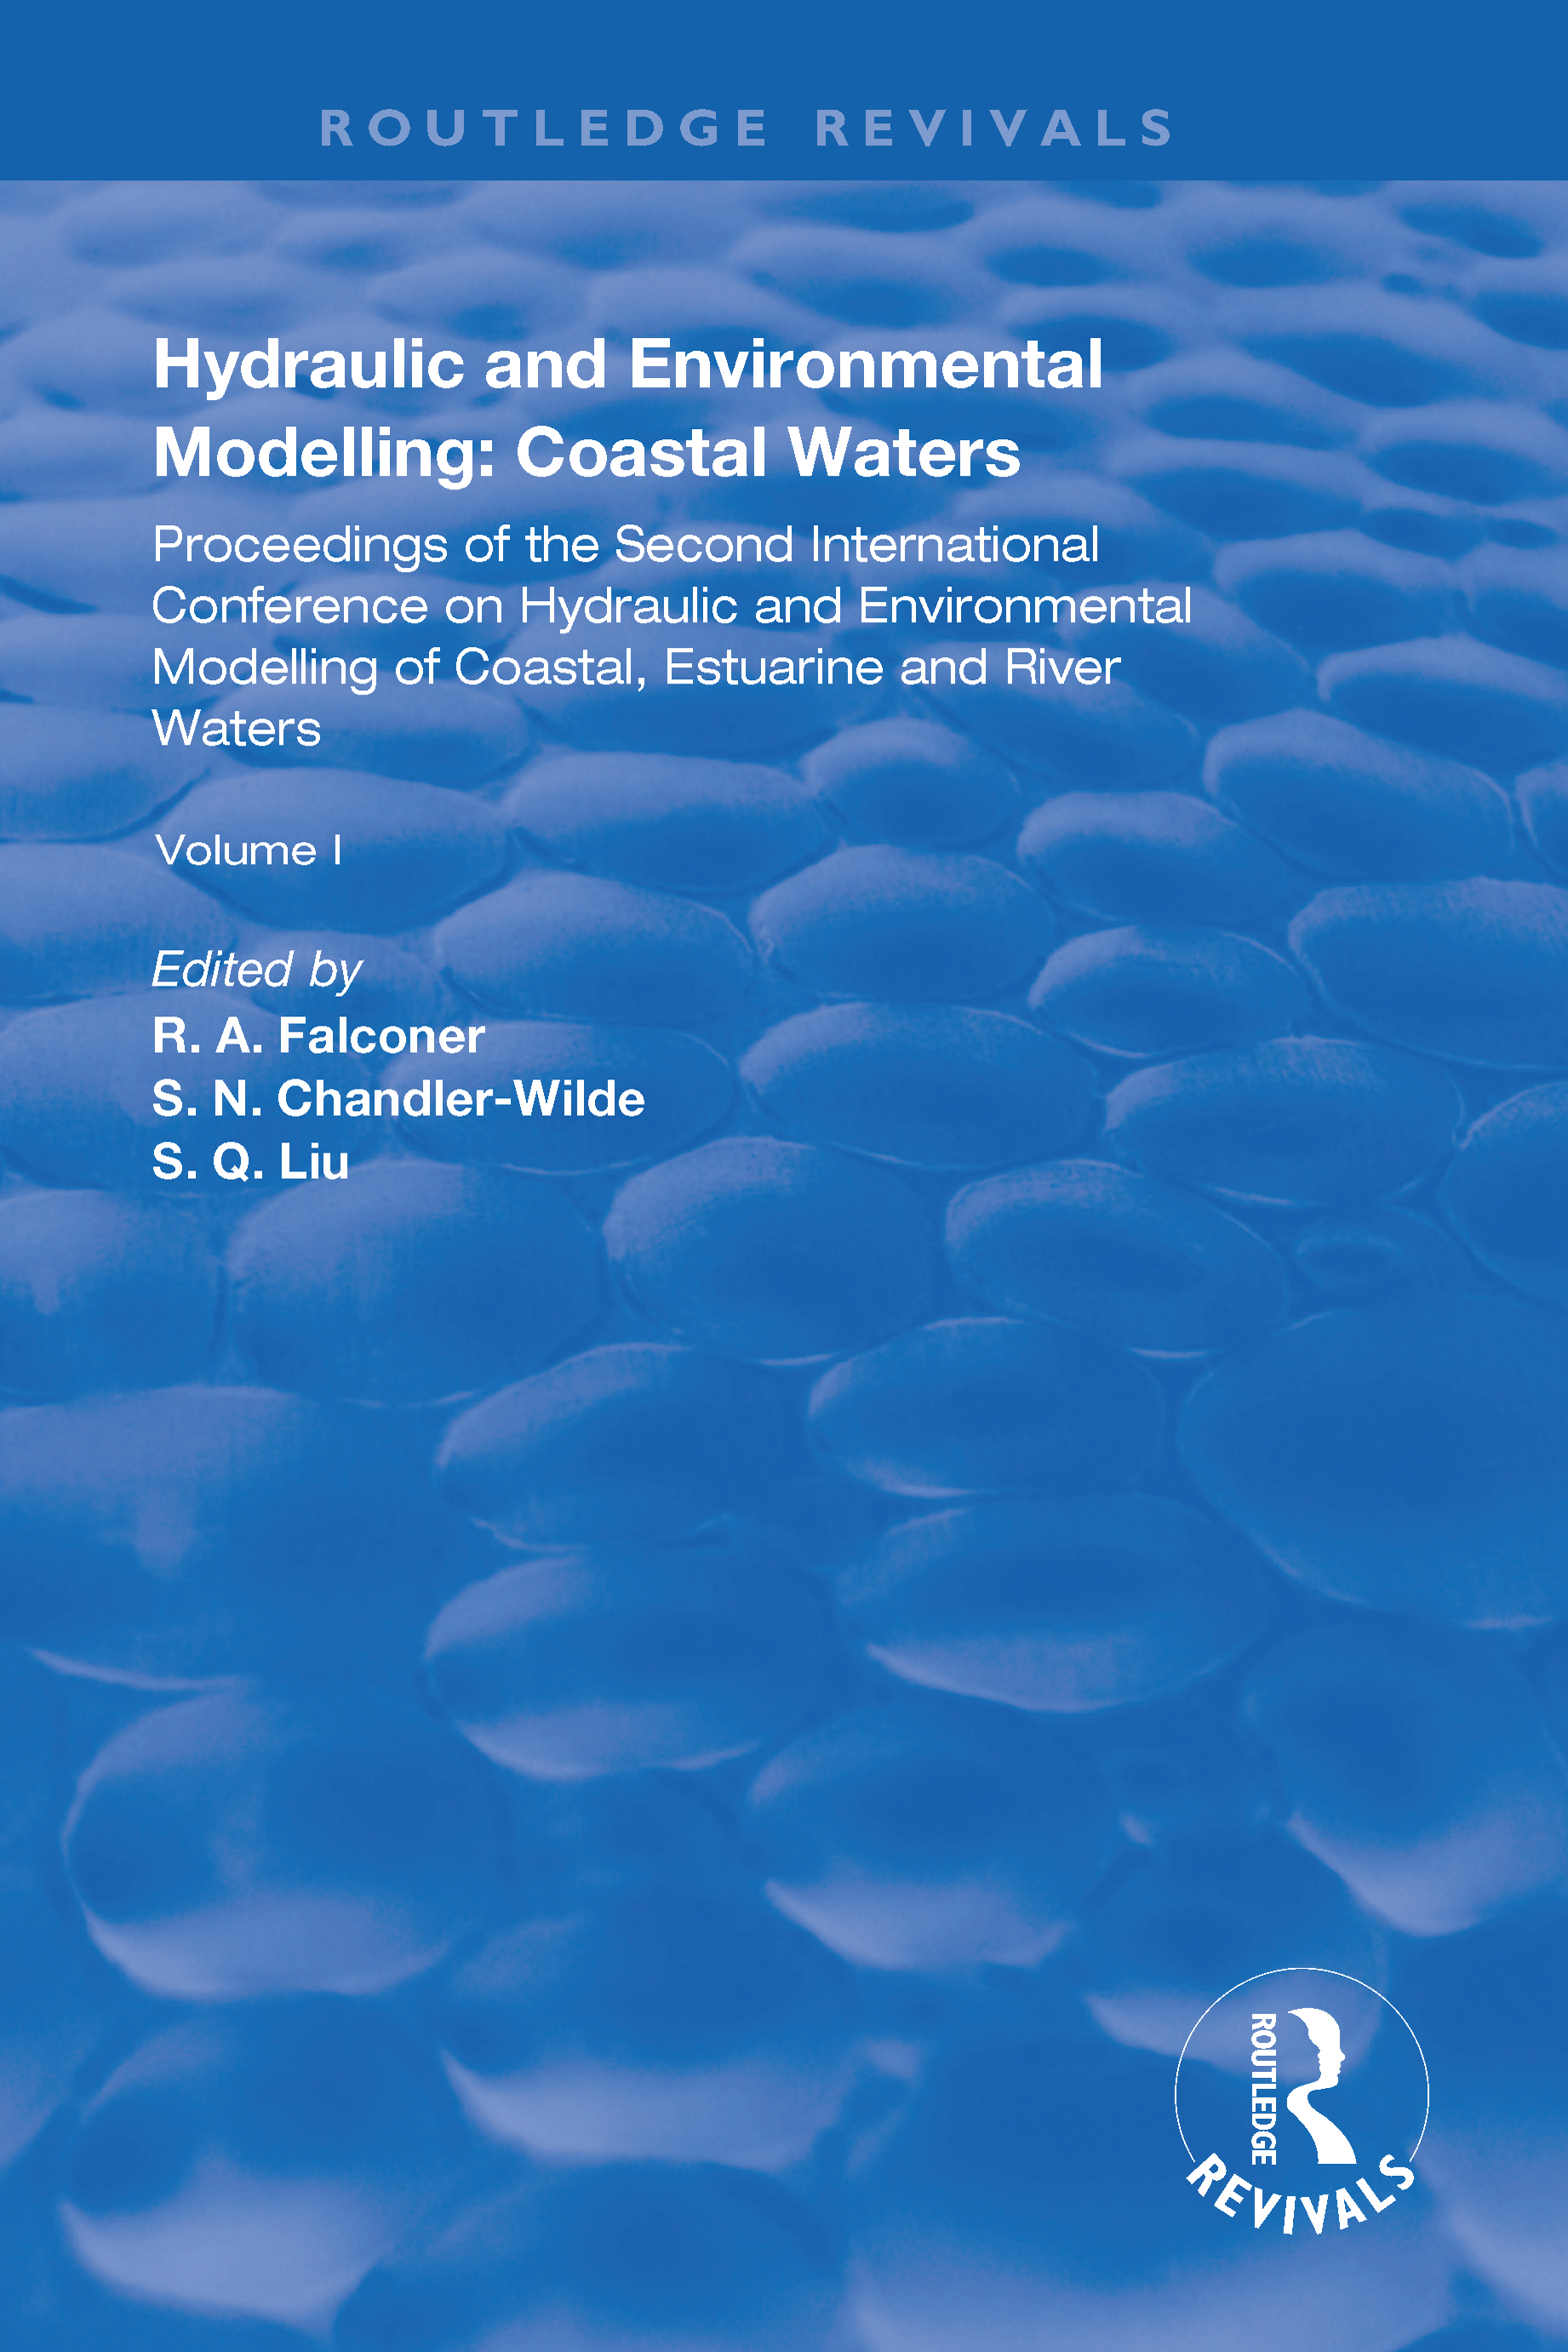 Hydraulic and Environmental Modelling: Proceedings of the Second International Conference on Hydraulic and Environmental Modelling of Coastal, Estuarine and River Waters. Vol. I., 1st Edition (Hardback) book cover